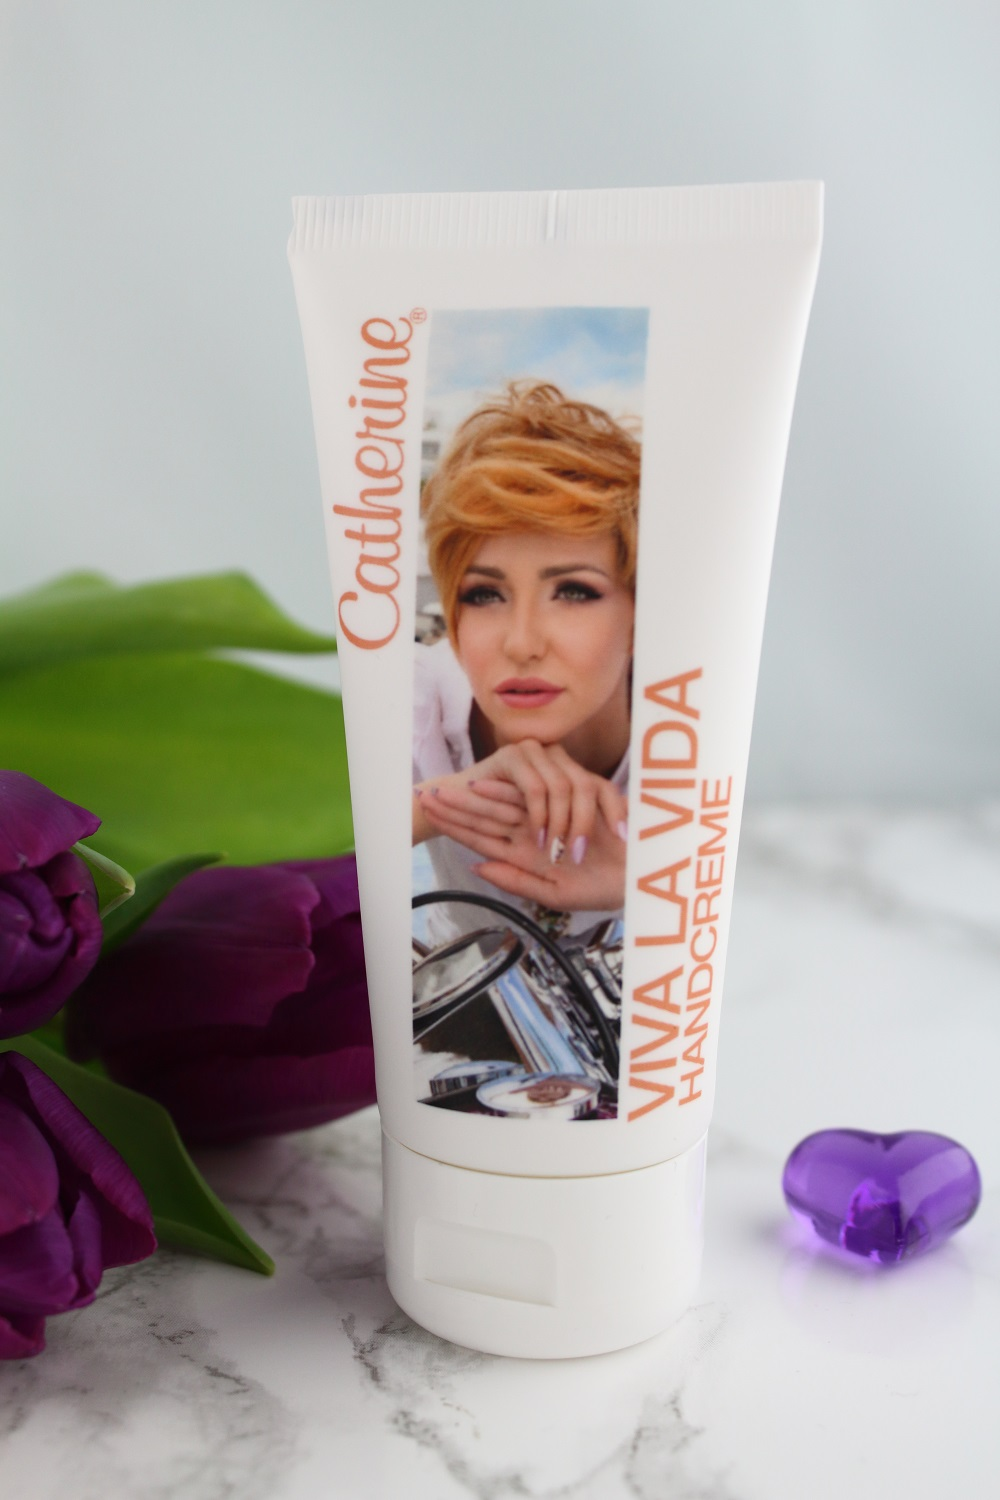 Catherine Viva la vida Beauty-Kollektion - Handcreme